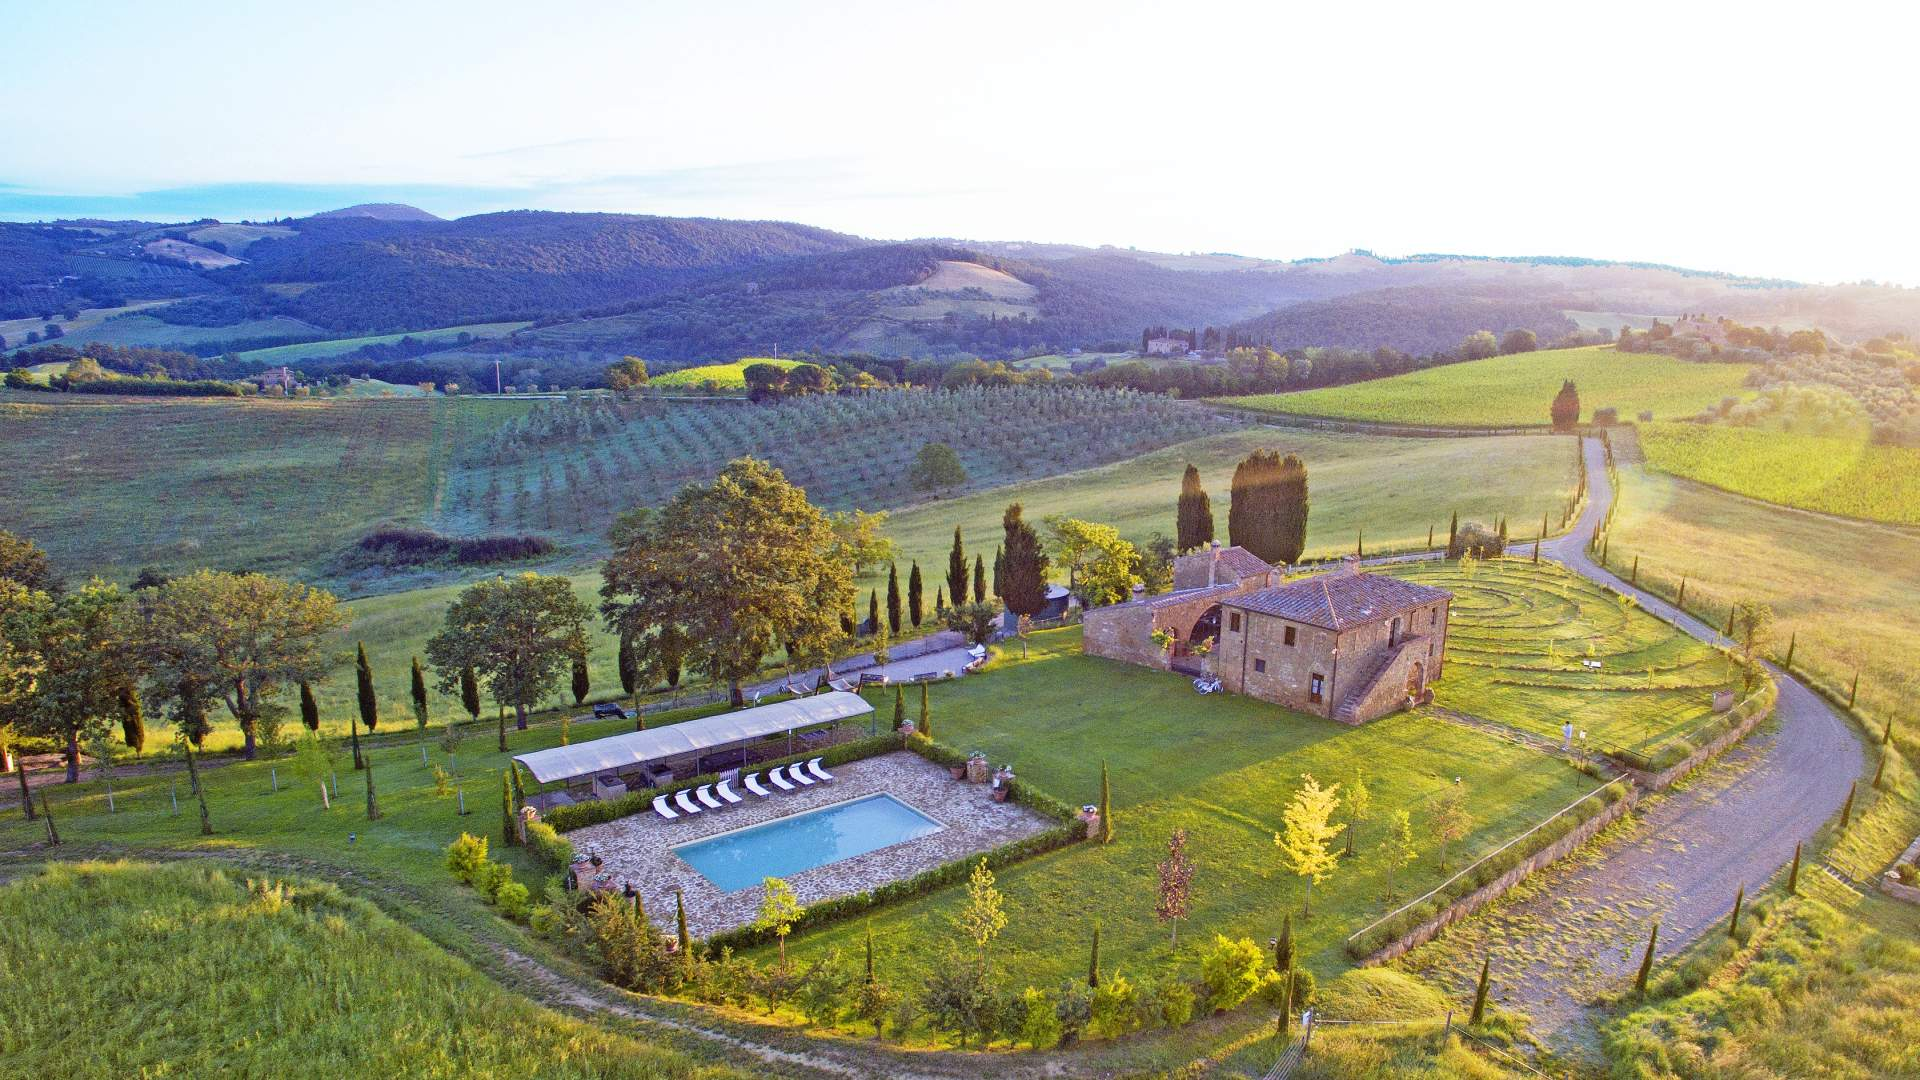 COUNTRYSIDE VILLA WITH 37 HECTARES OF LAND FOR SALE IN PIENZA